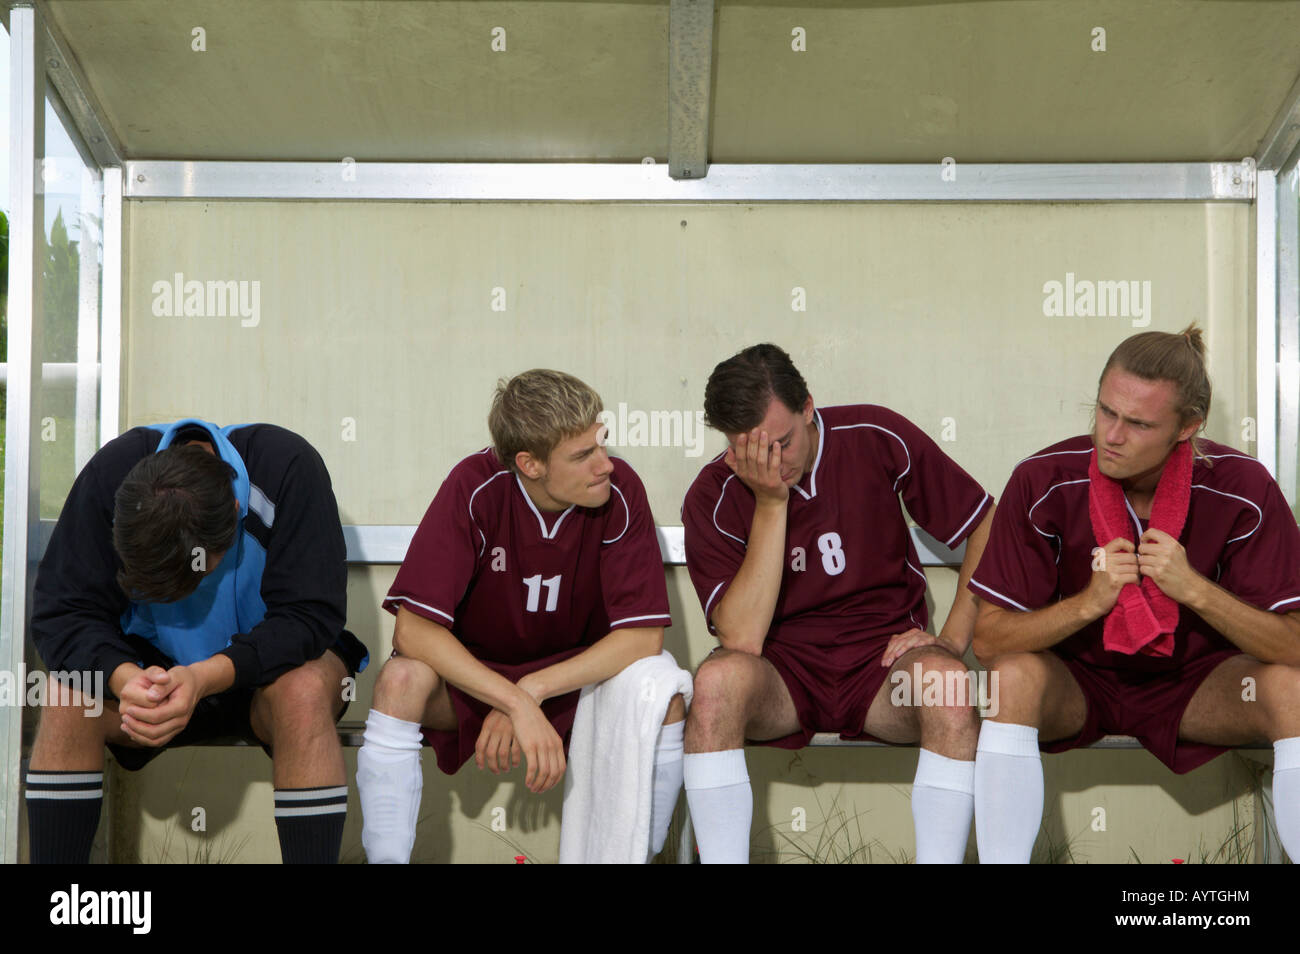 Disappointed kickers sitting on substitutes' bench - Stock Image